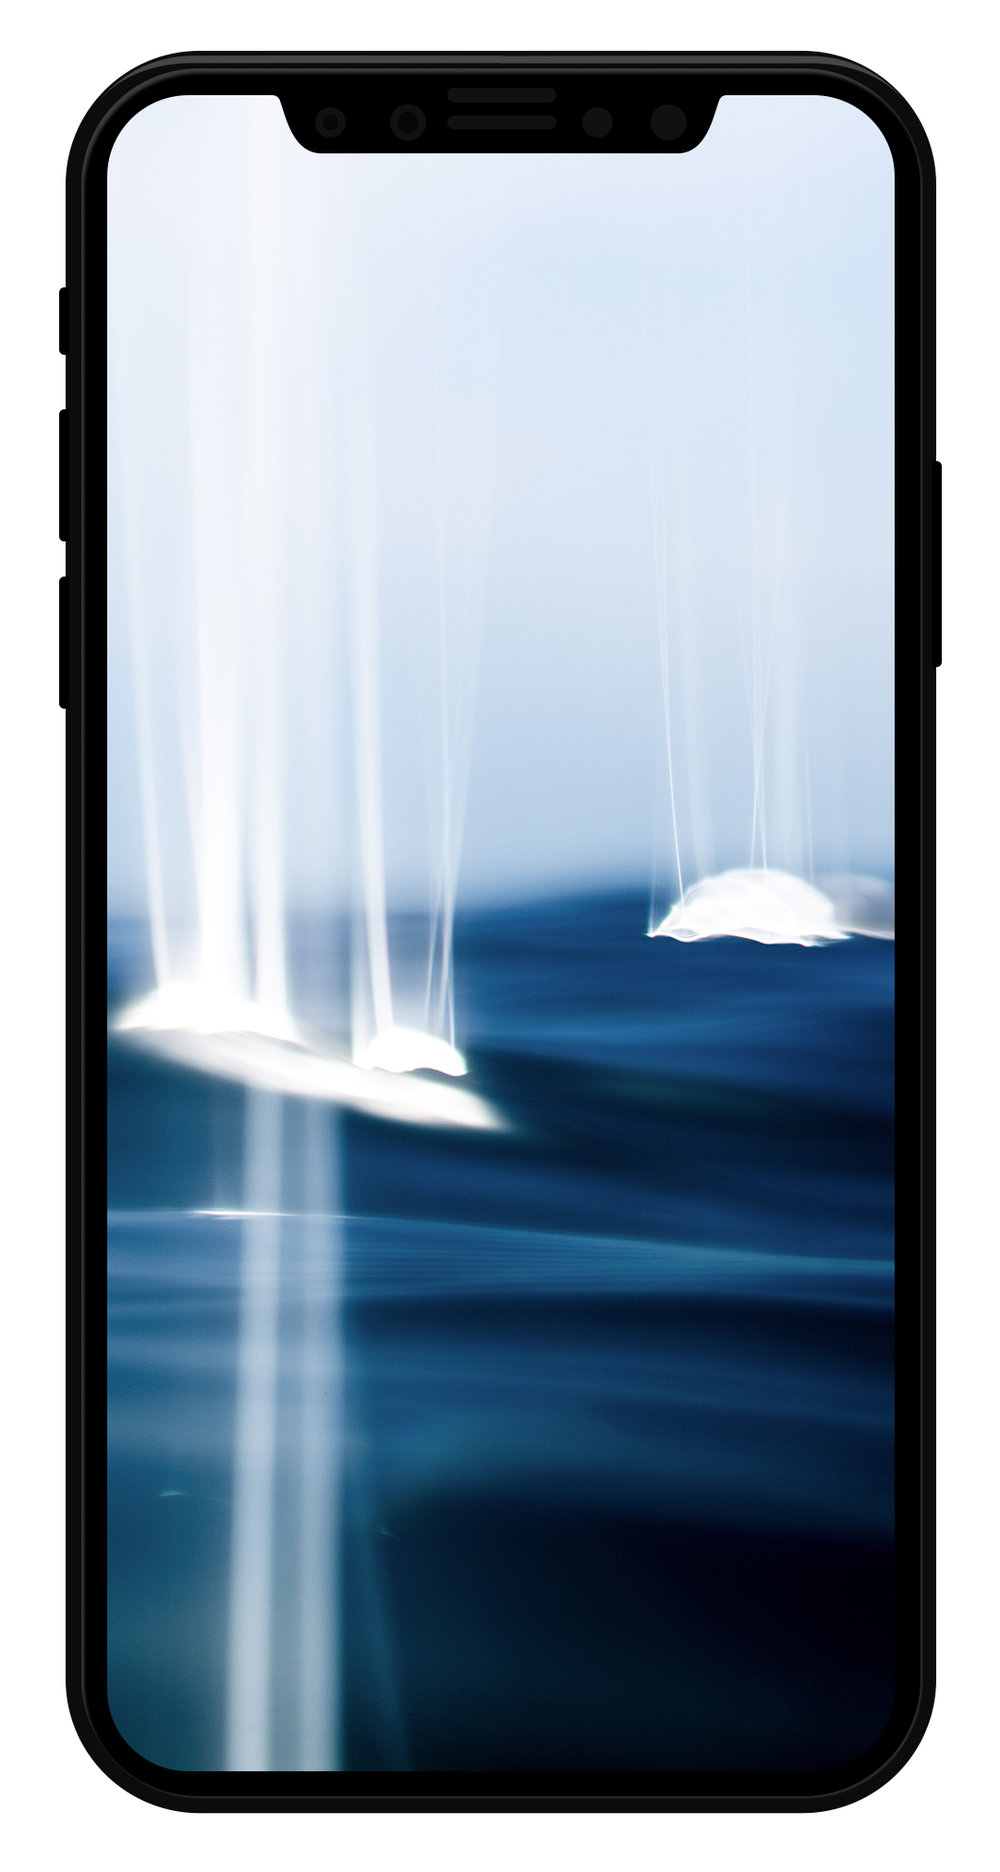 iphone-8-mockup-downloadablhfe.jpg